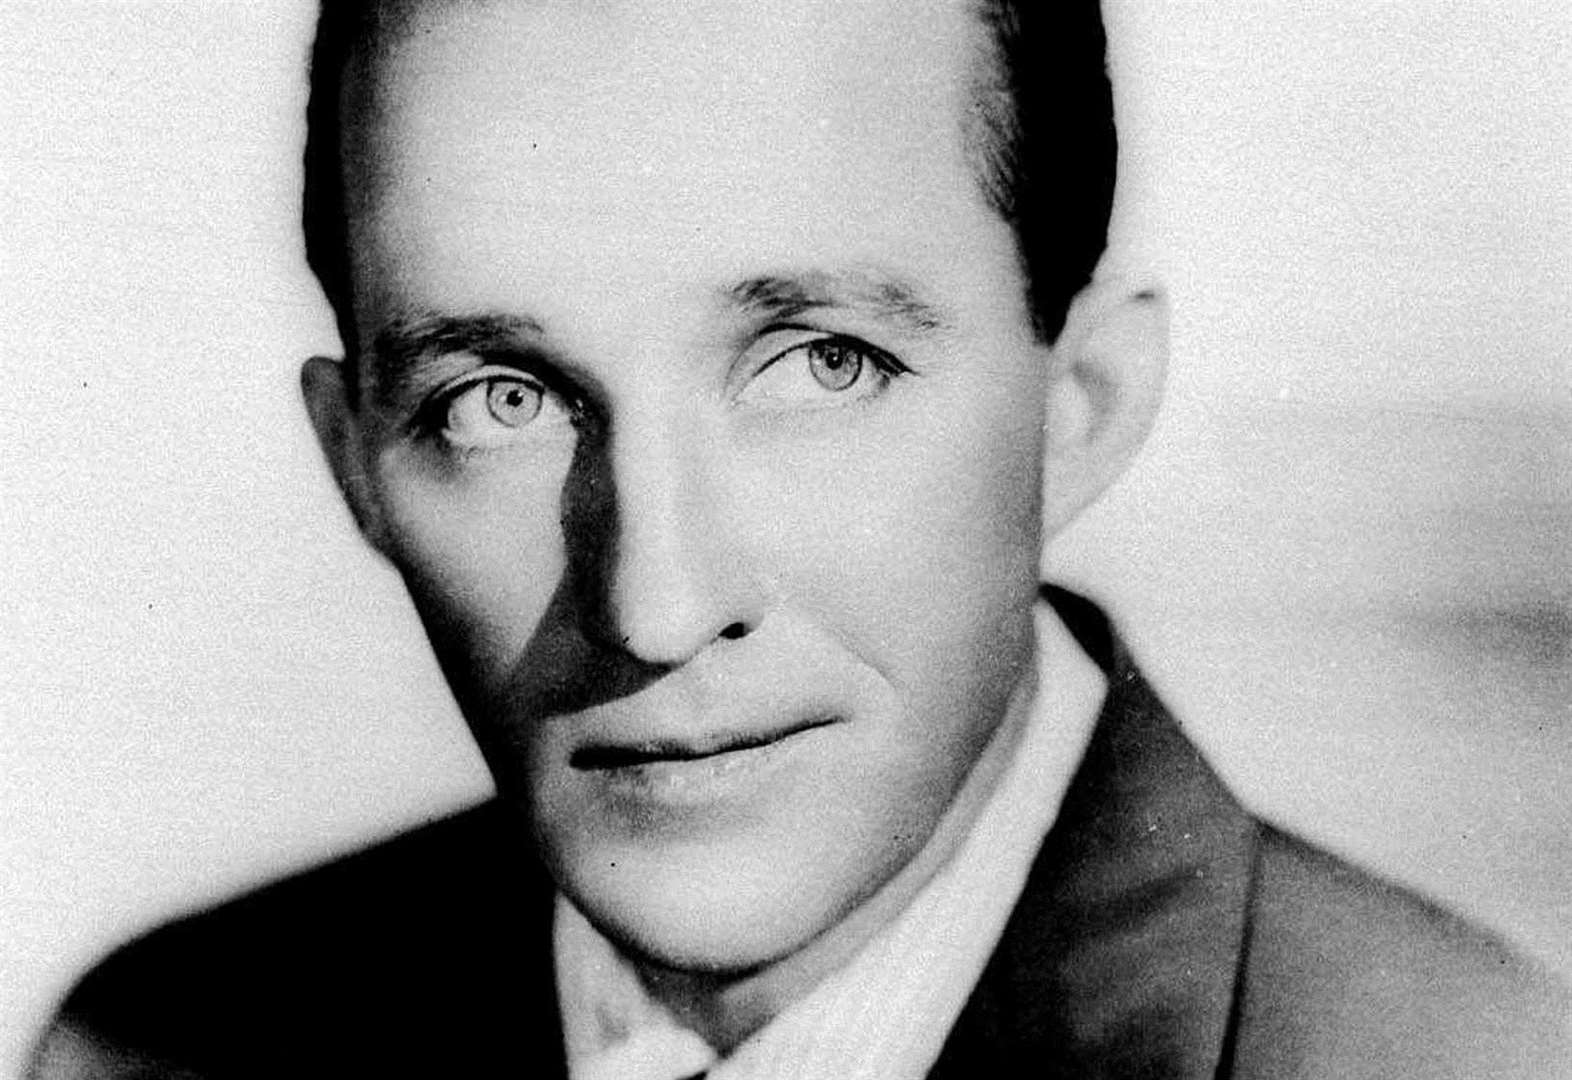 Are you Bing Crosby?